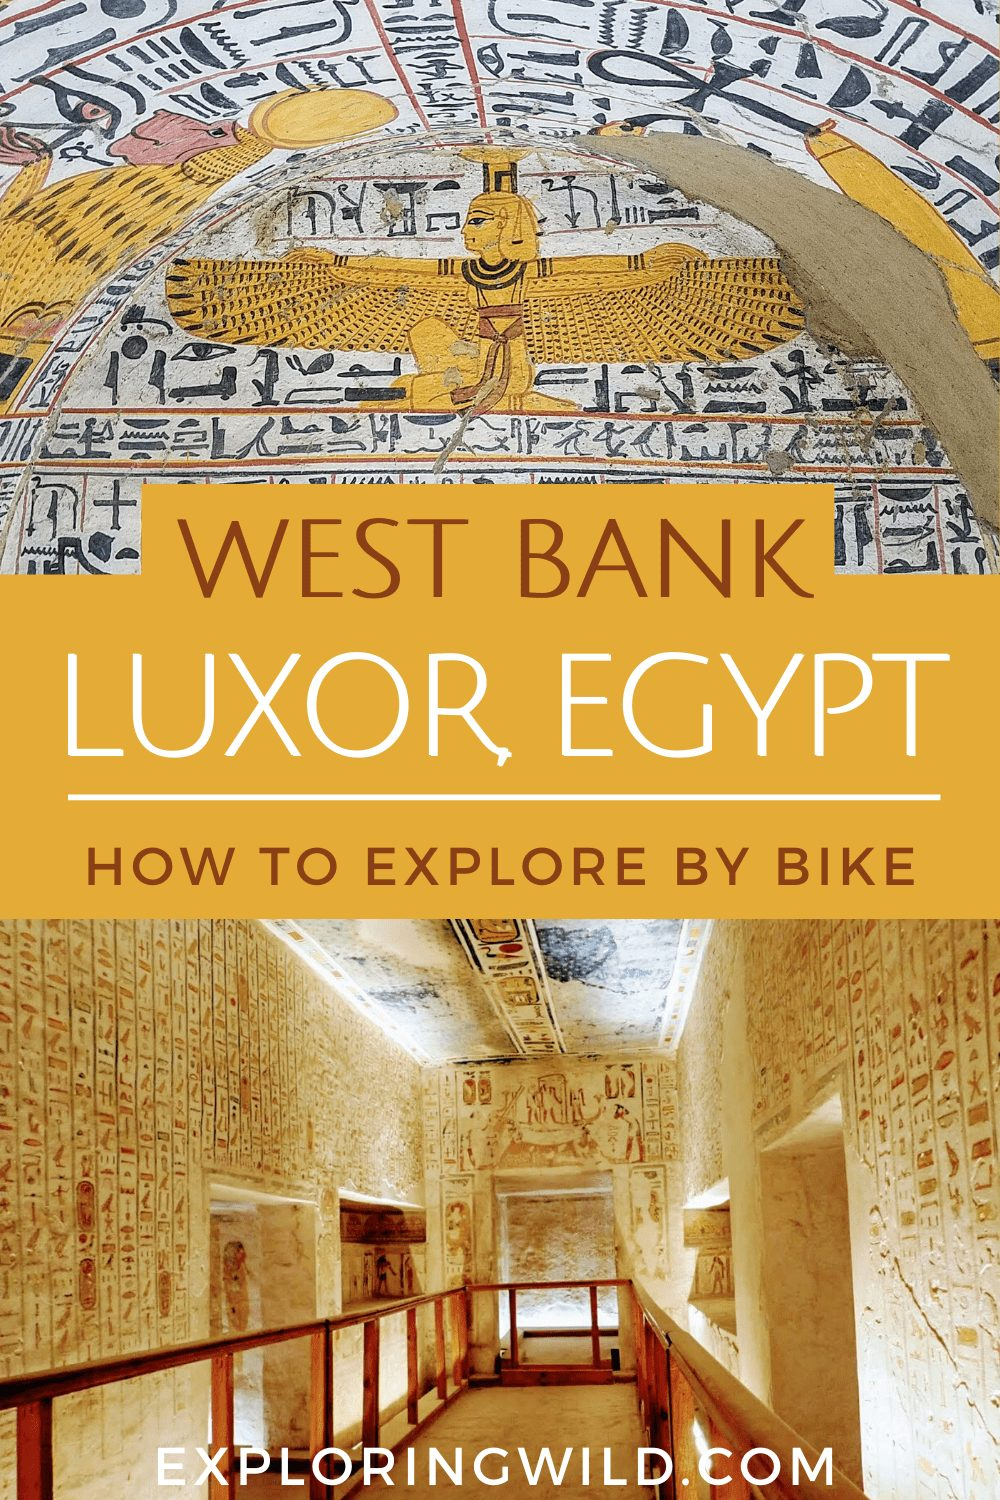 Pictures of Egyptian tombs with text: West Bank Luxor, Egypt